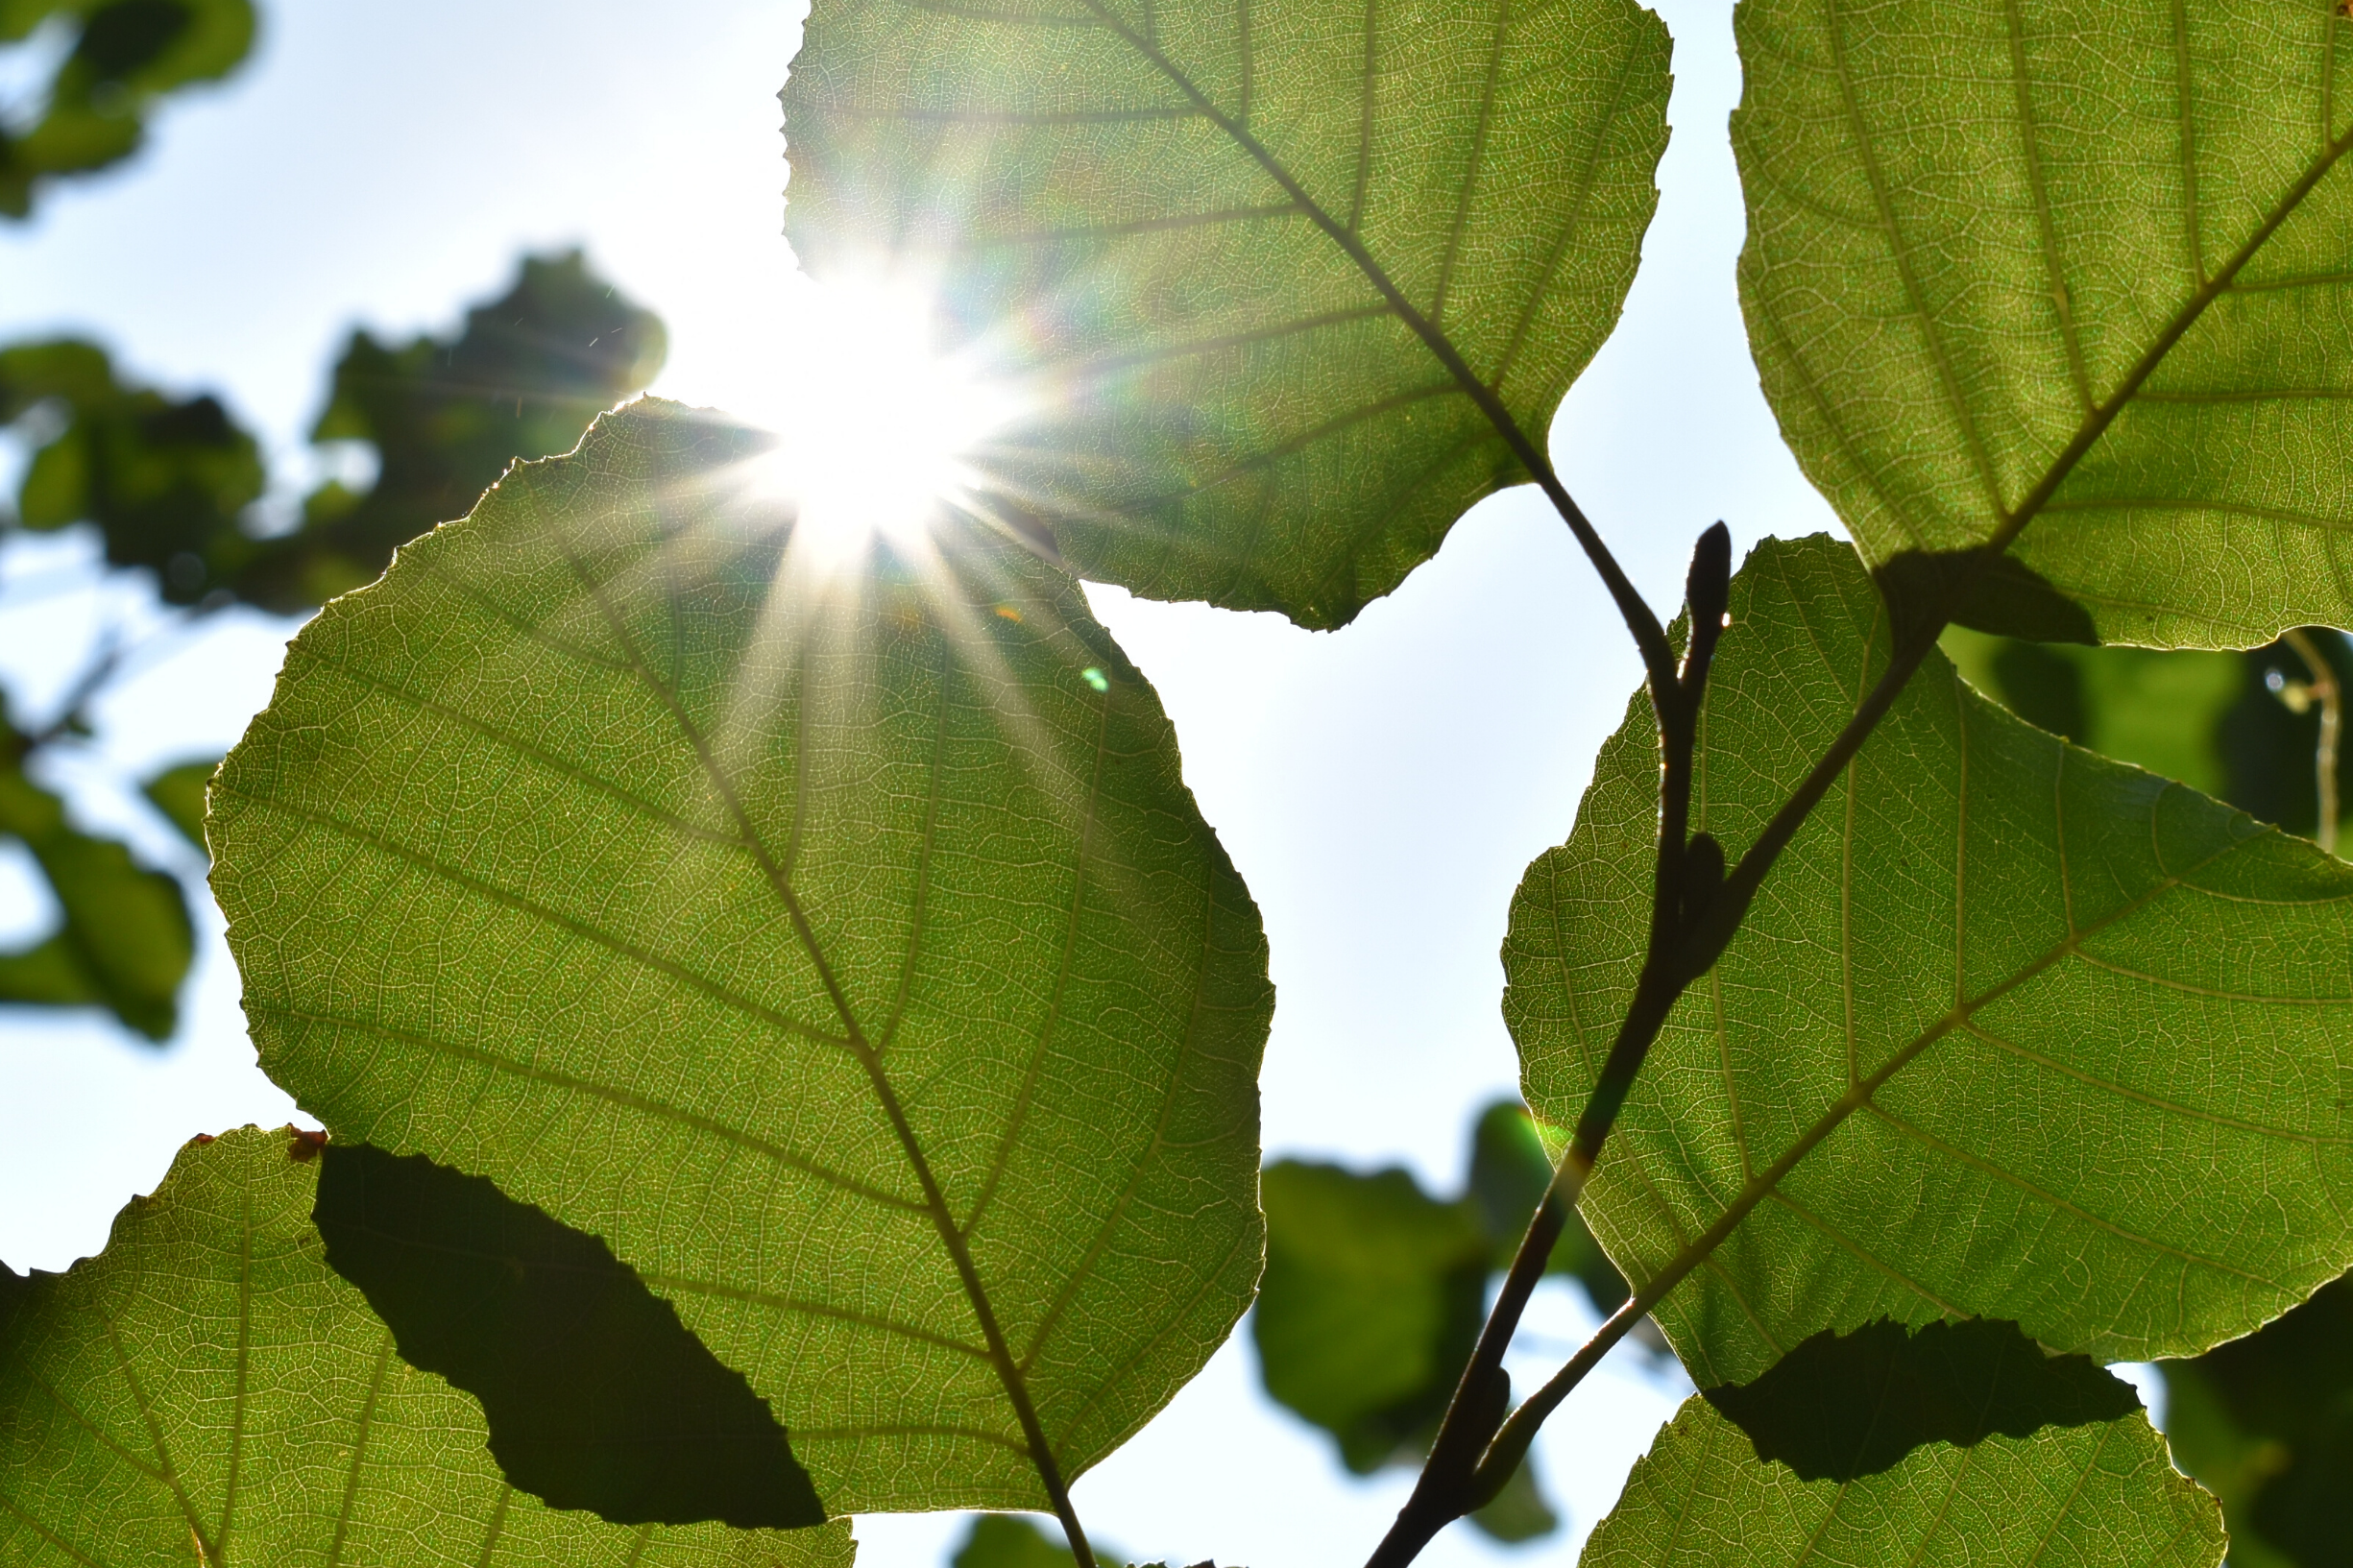 Mental Wellness Picture - Leaves with sunlight shining in background, representative of mental wellness associated with Our Wellness Solution - UWP Six Pillars